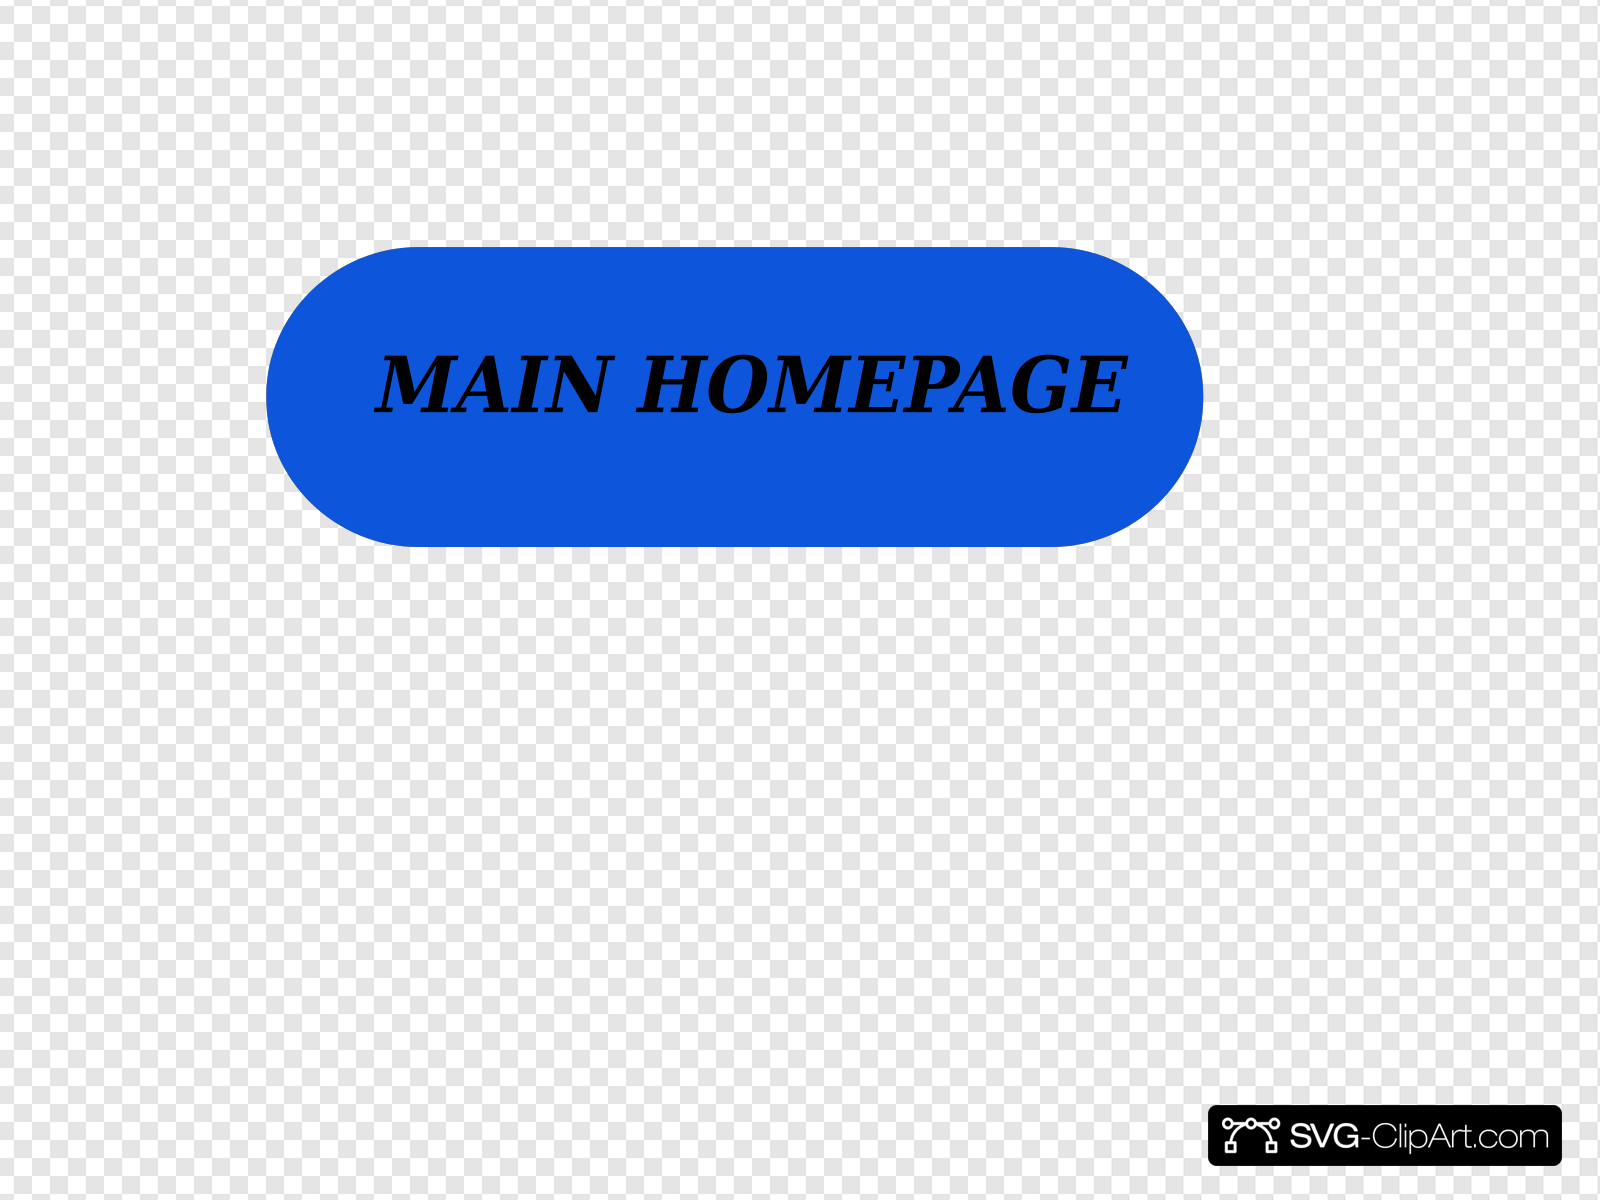 Main Homepage Clip art, Icon and SVG.